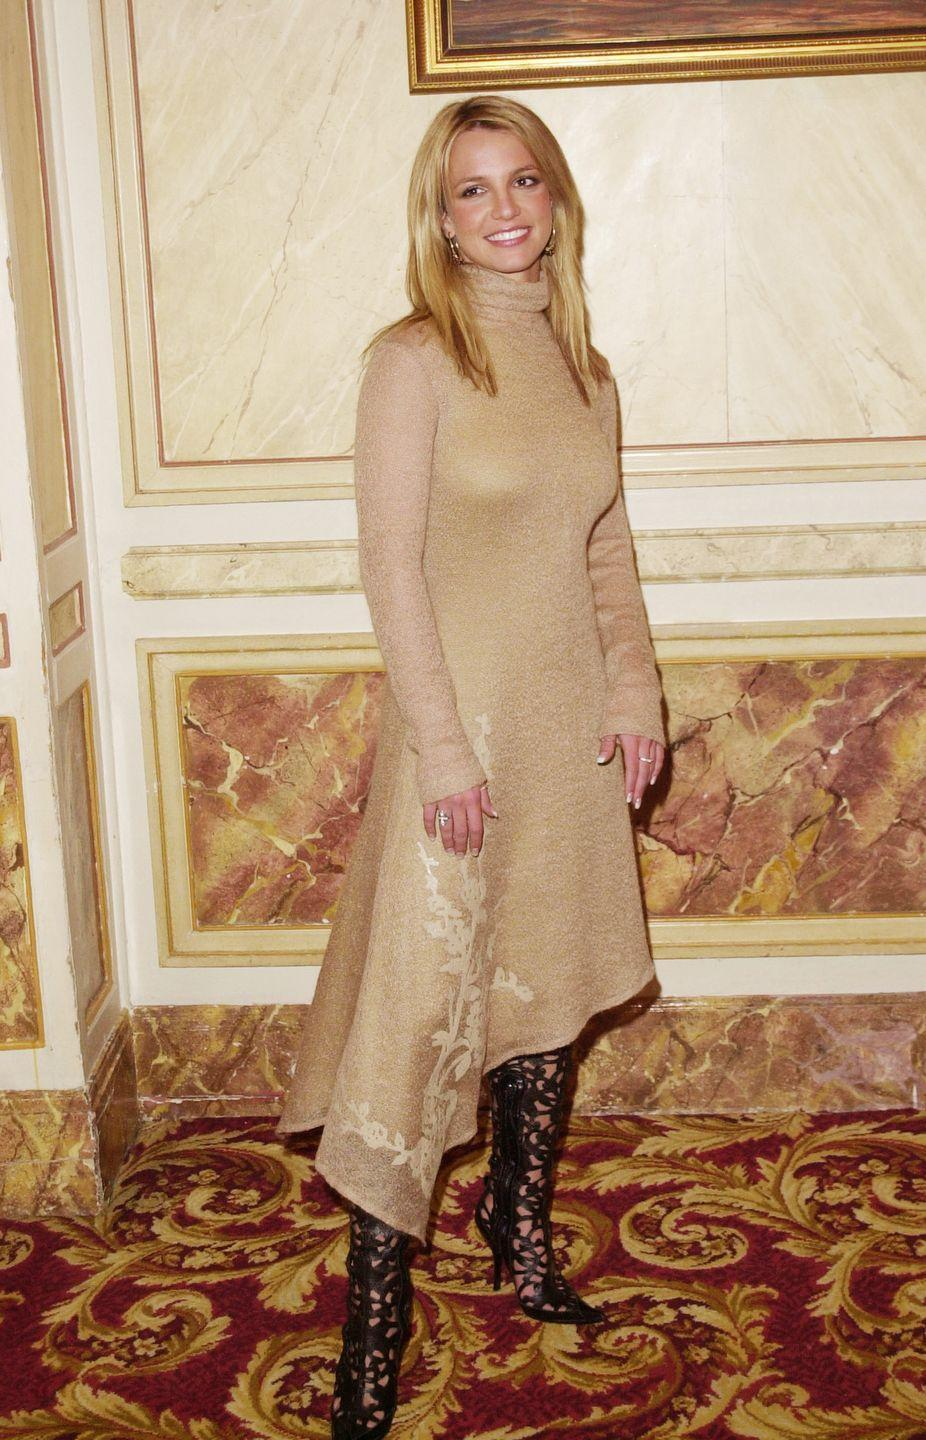 <p>Never thought a beige turtleneck dress could actually look this good, but wow, am I proved wrong. The asymmetrical hemline and laser cutout boots really make it a LOOK.</p>